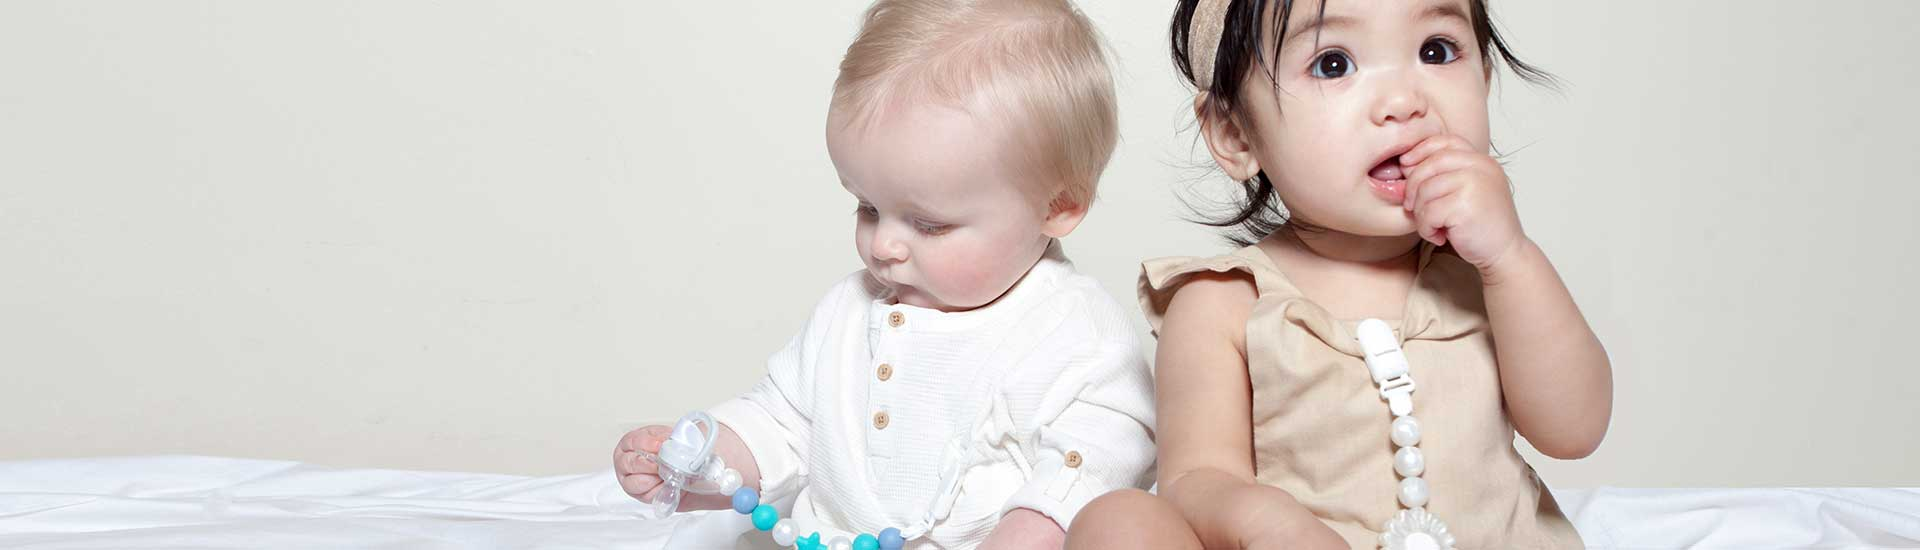 New Nibbling Teething Products